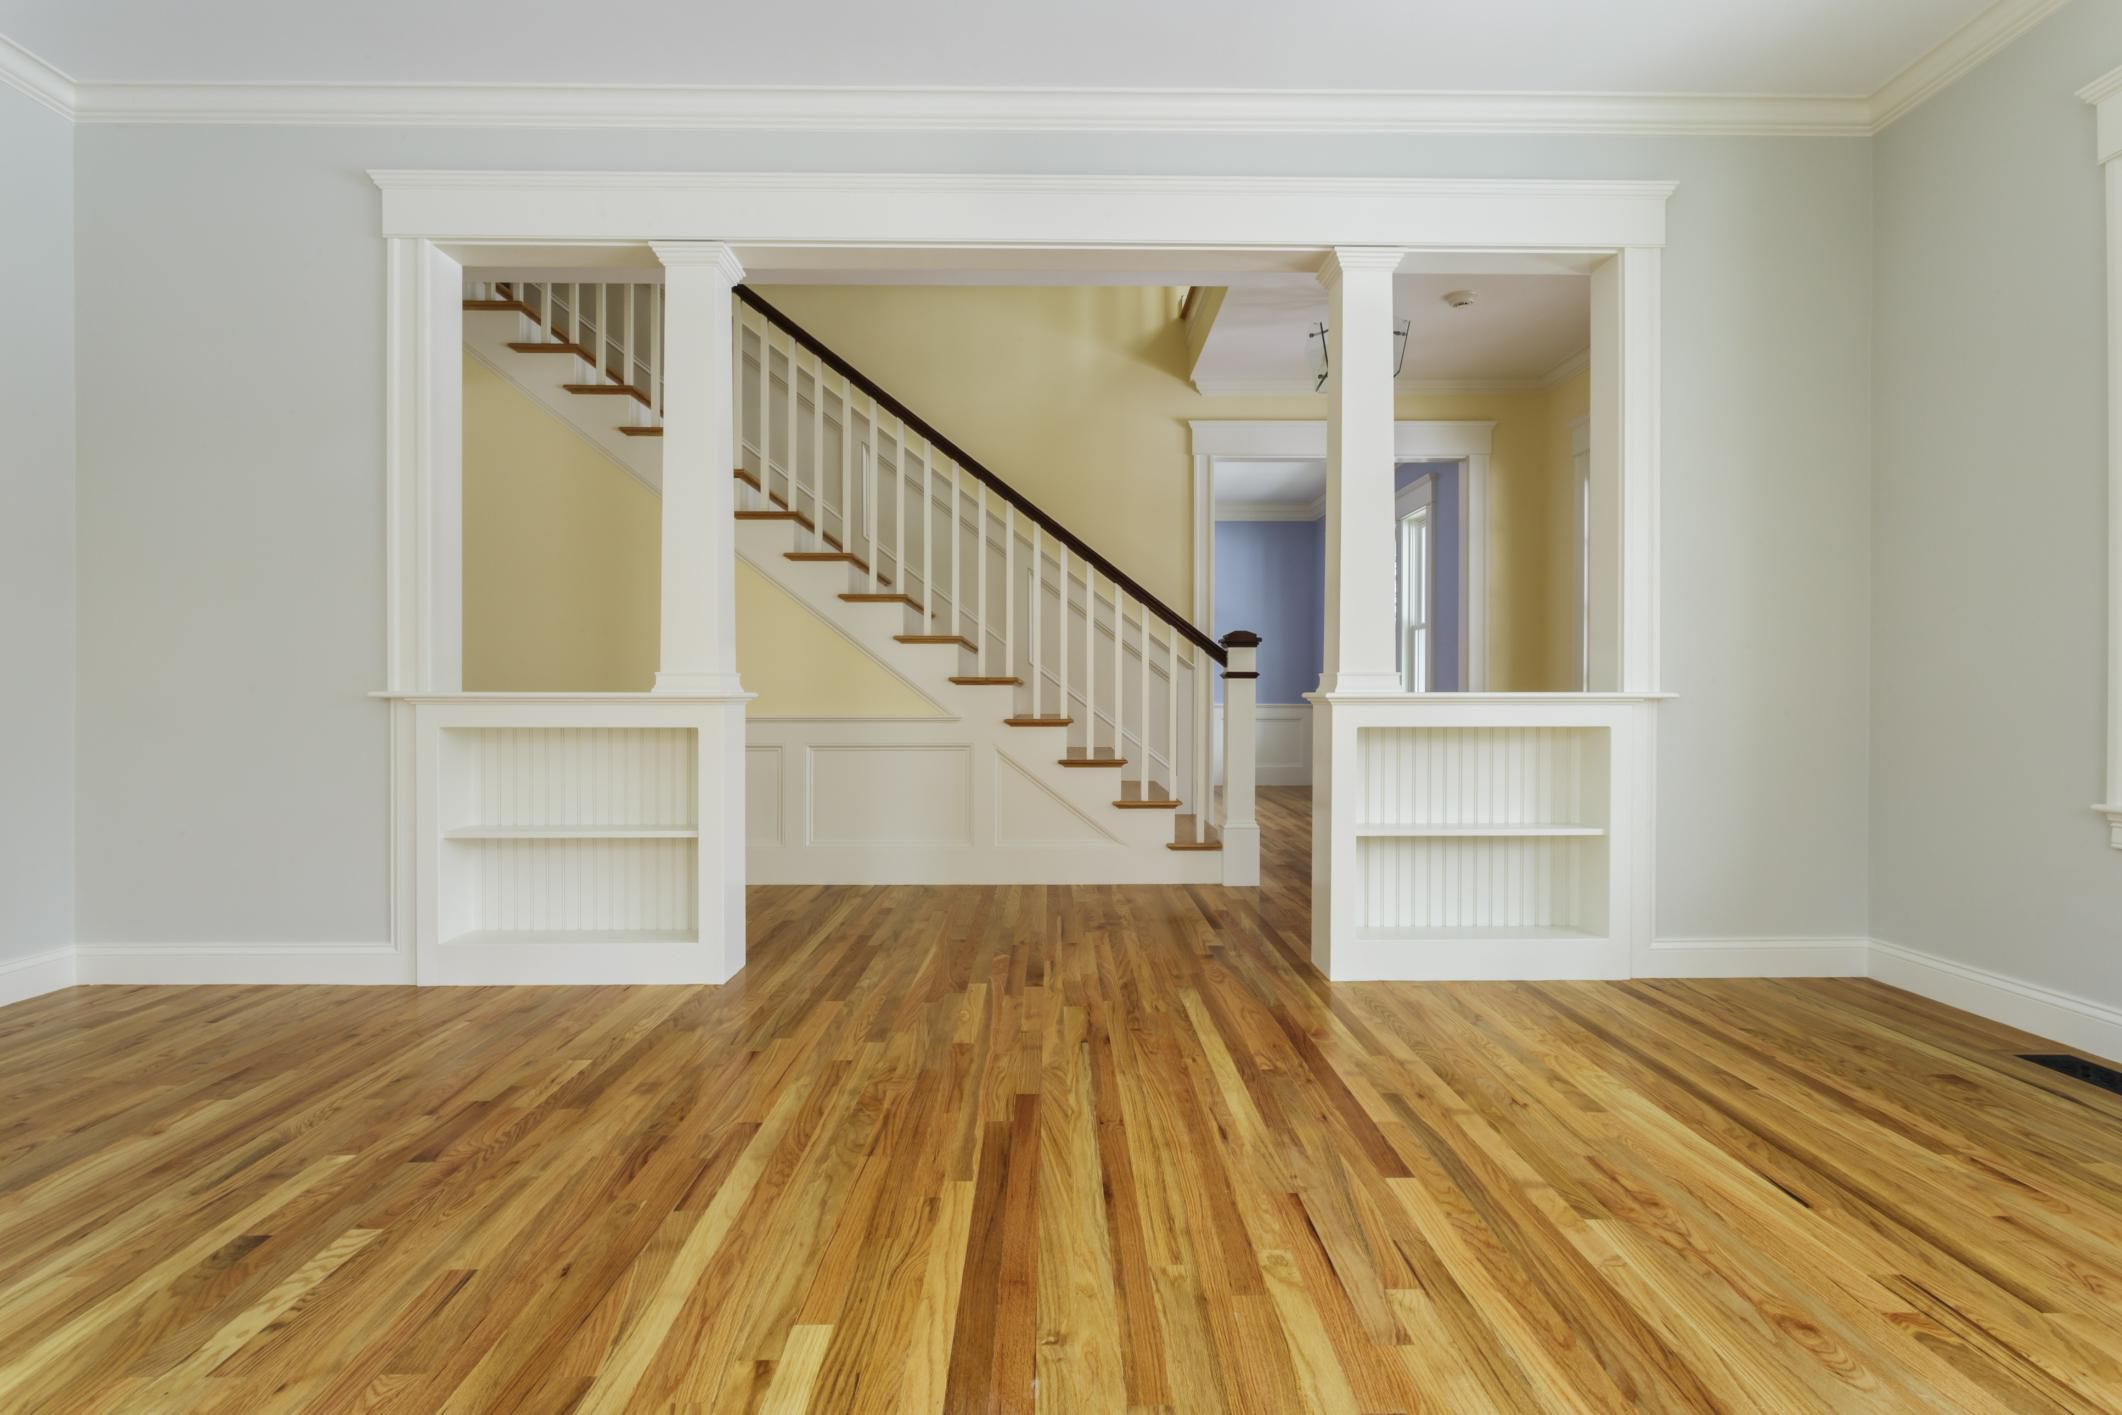 cost of bruce hardwood floors installed of guide to solid hardwood floors in 168686571 56a49f213df78cf772834e24